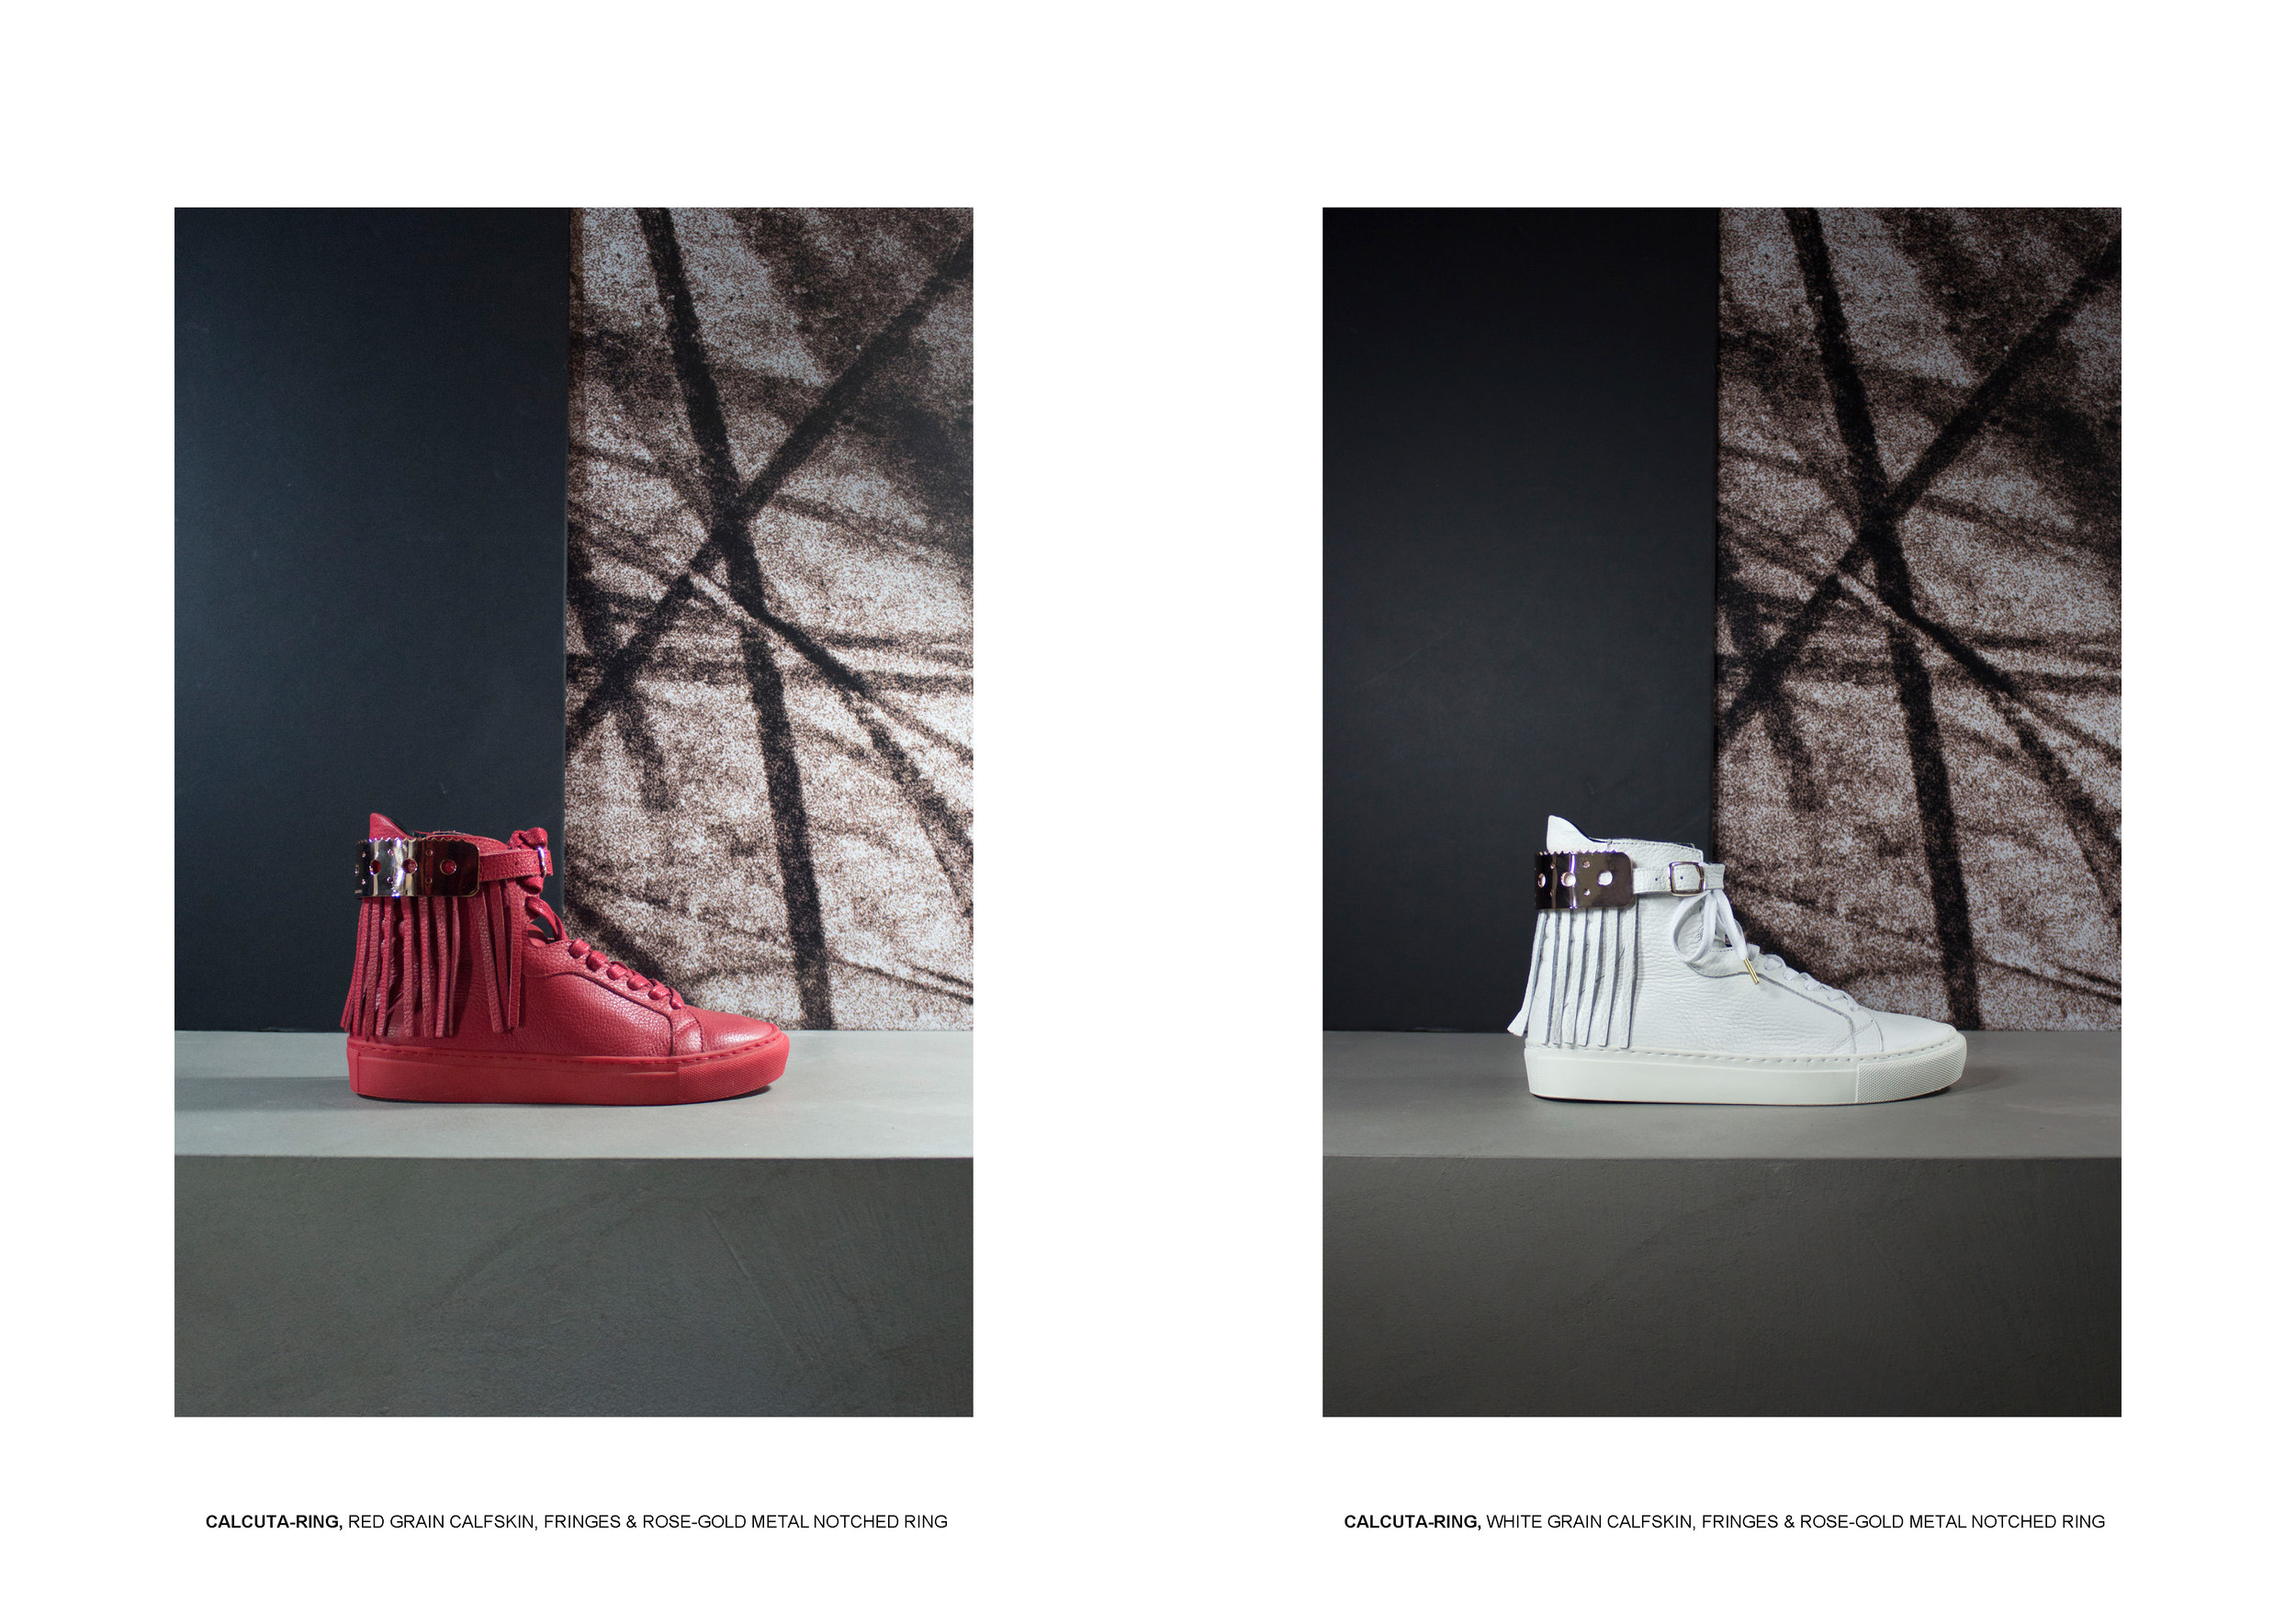 eugenericonneaus_main-aw15-16-high-w_Page_35.jpg